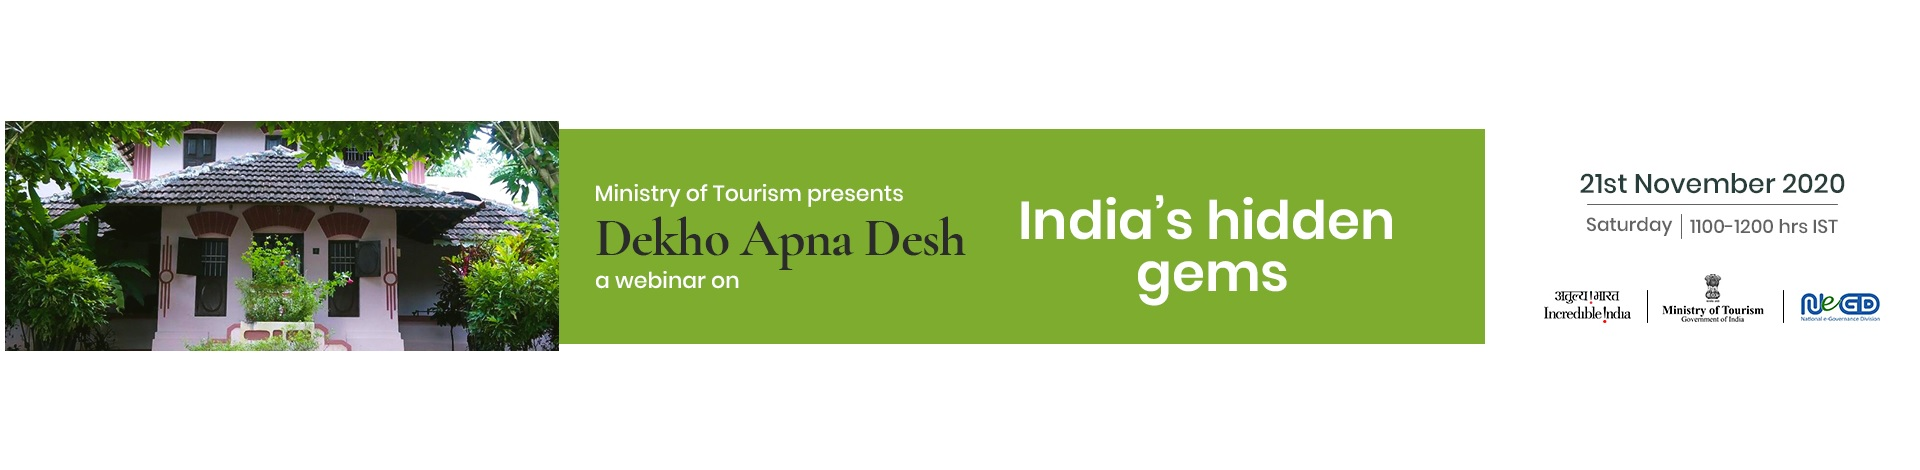 Dekho Apna Desh Webinar on 21th November 2020.